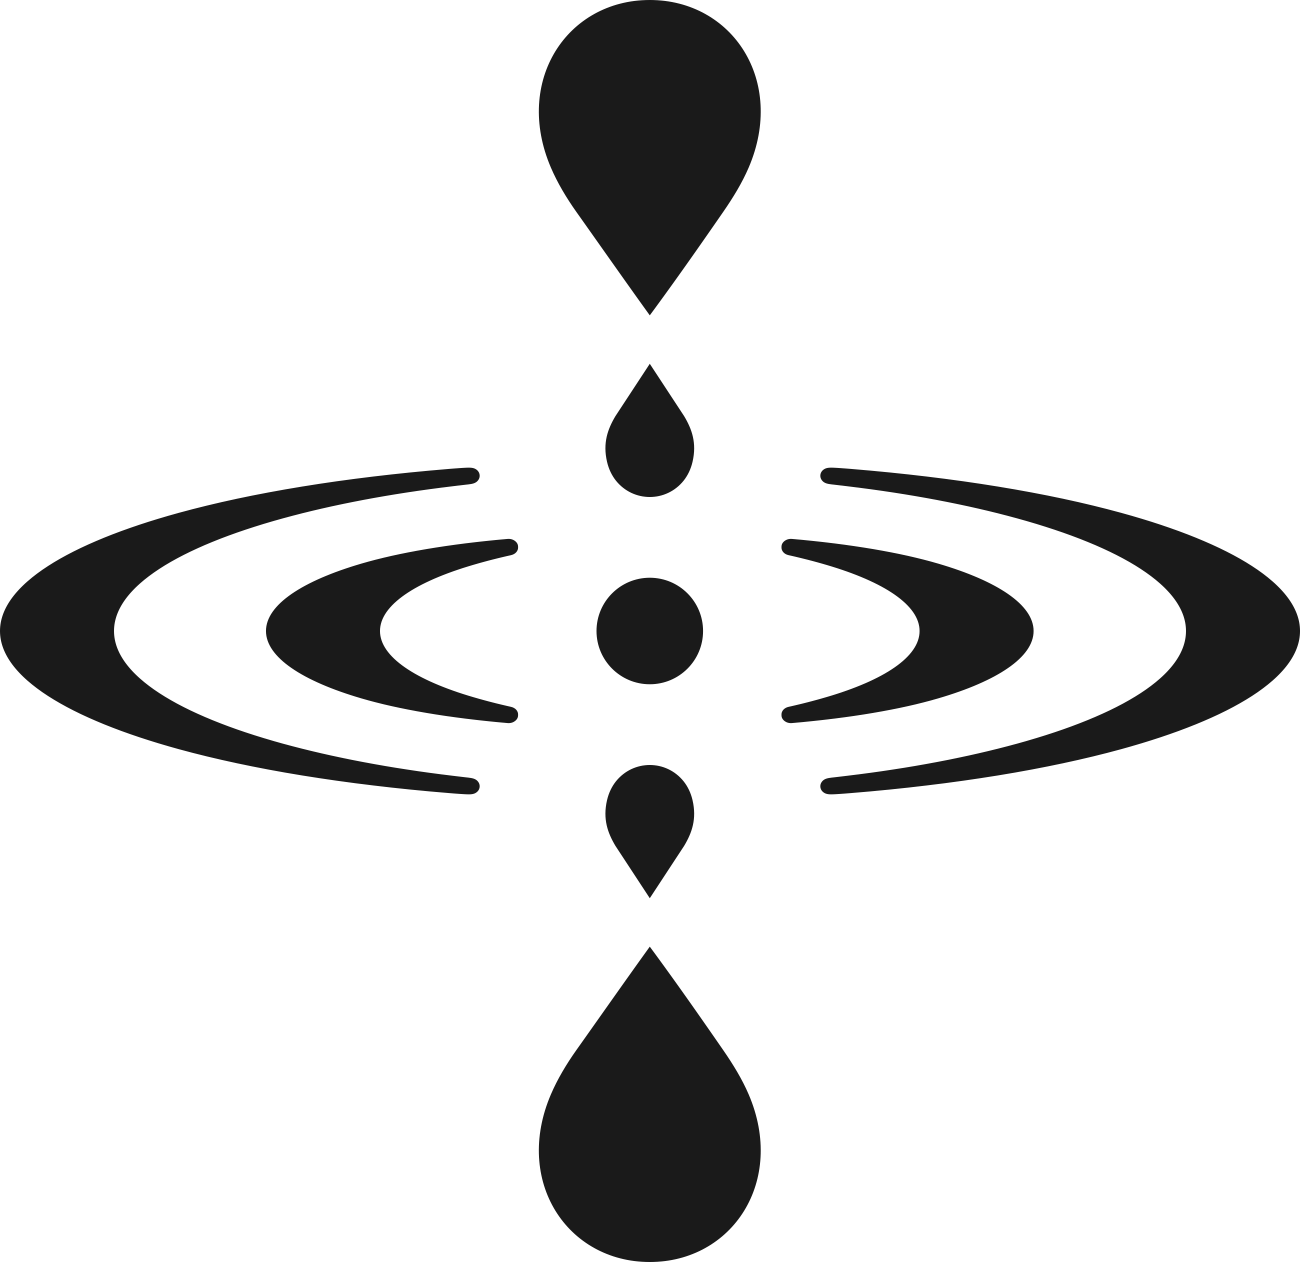 https://radicalcourse.org/img/mindfulness-symbol-reminder-tattoo.png